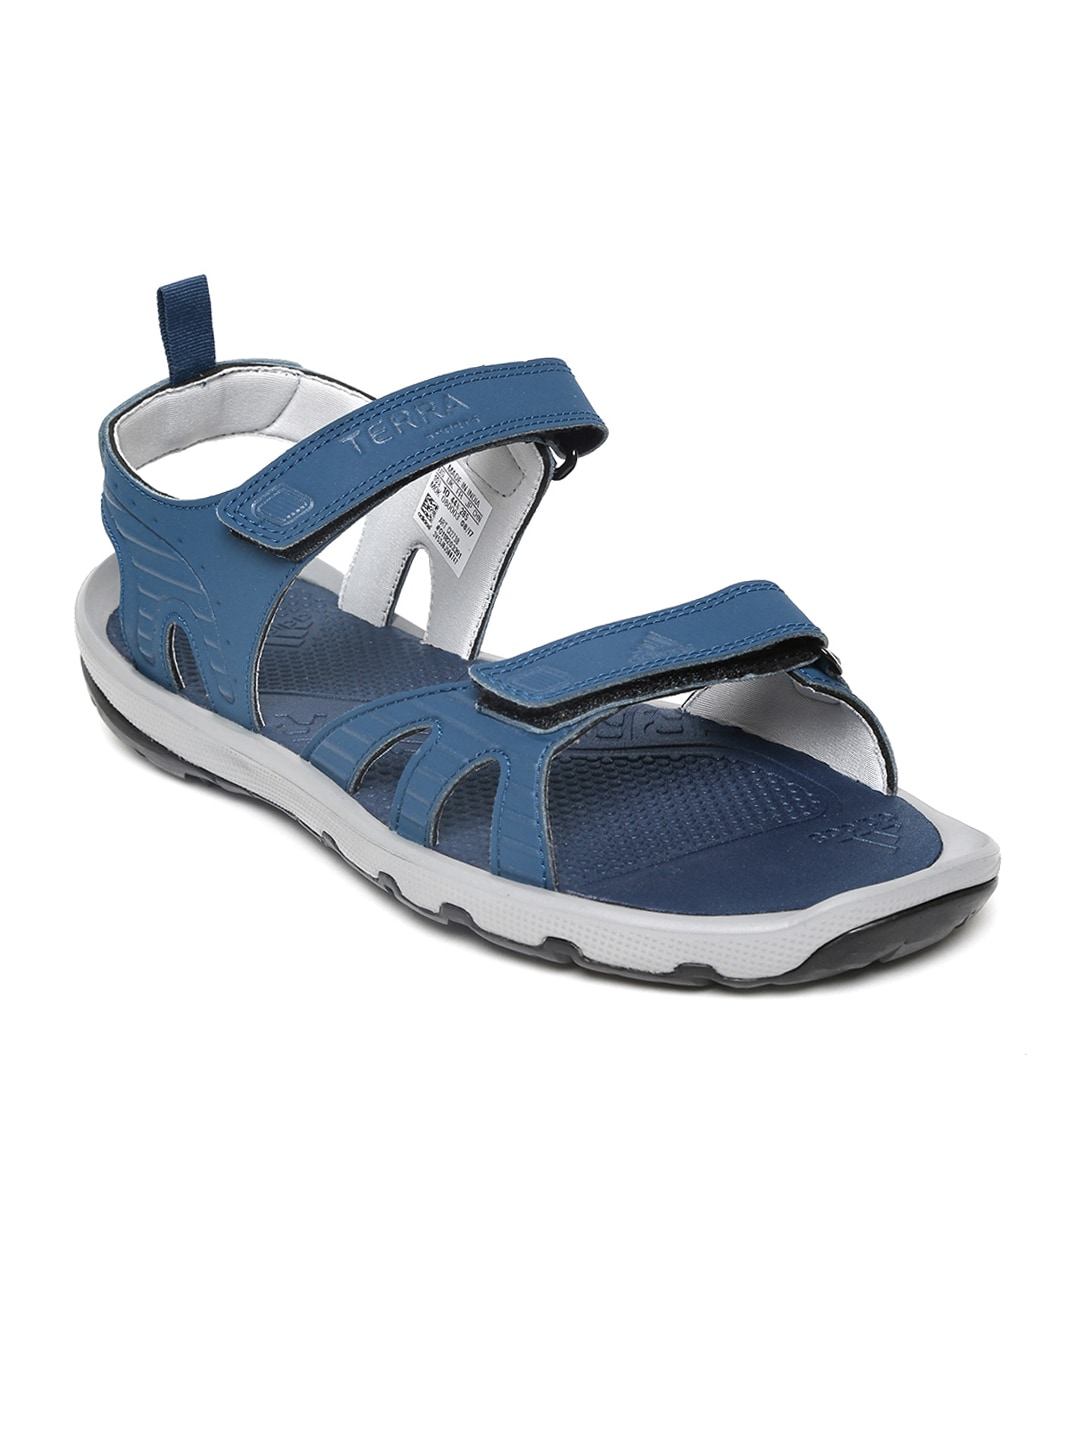 83a47328d6ed Adidas Sandal Sandals - Buy Adidas Sandal Sandals online in India